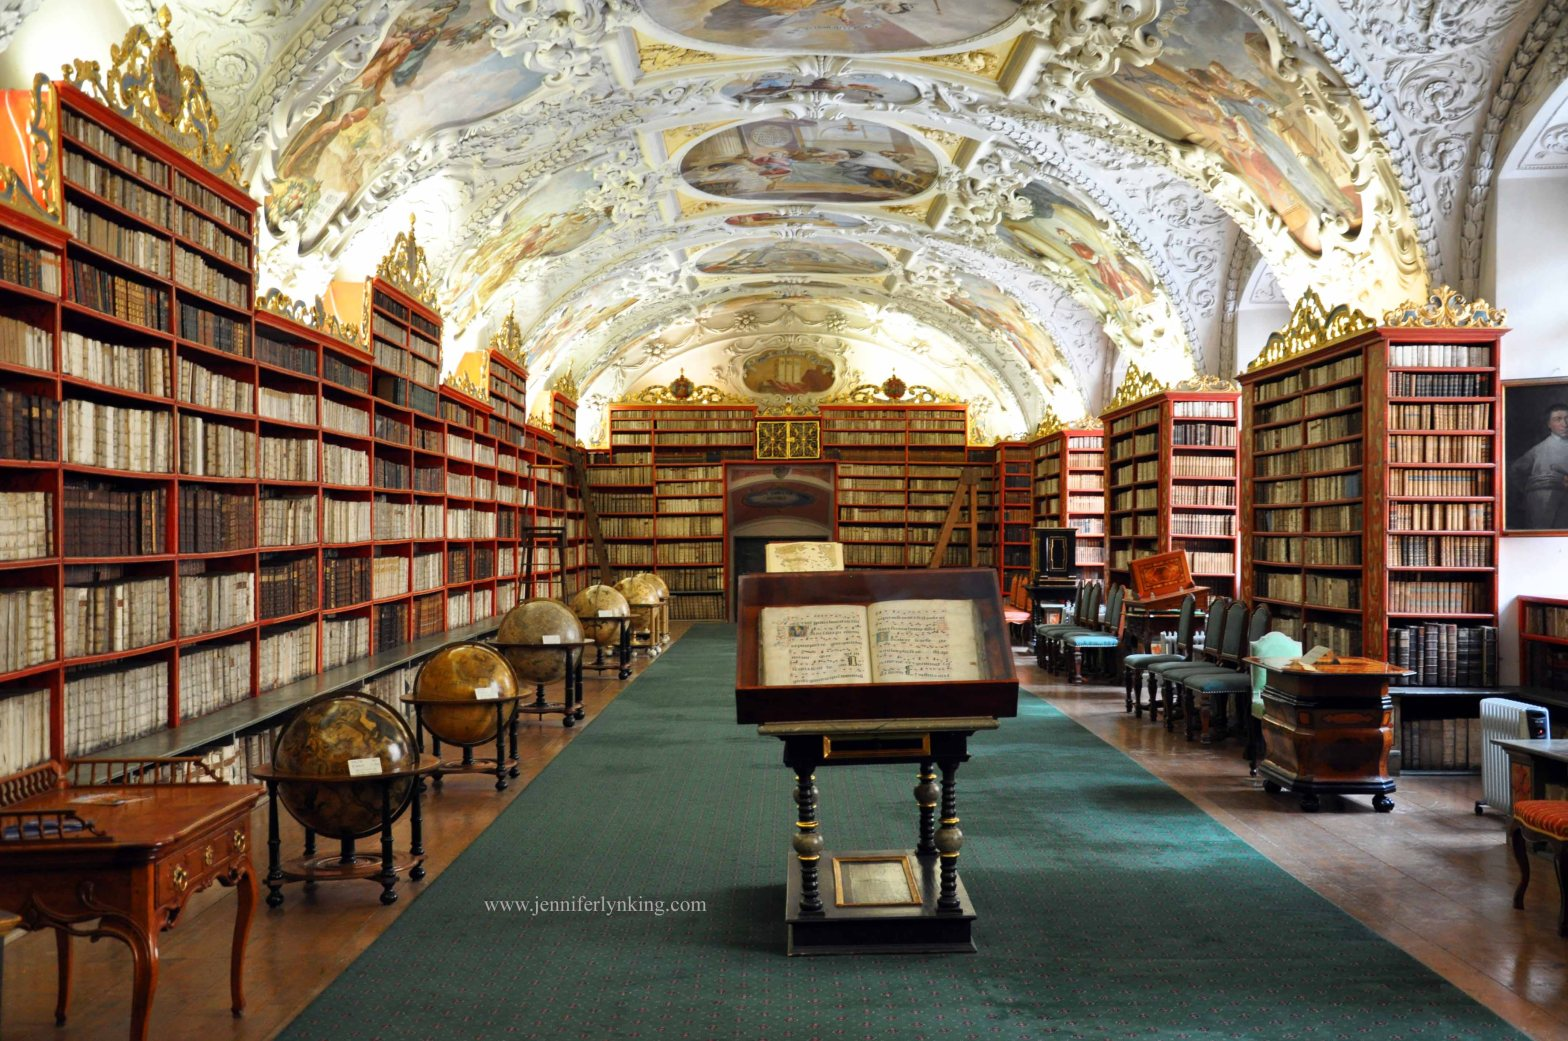 Library at Strahov Monastery, Prague: A setting in my work-in-progress novel, Water Lily